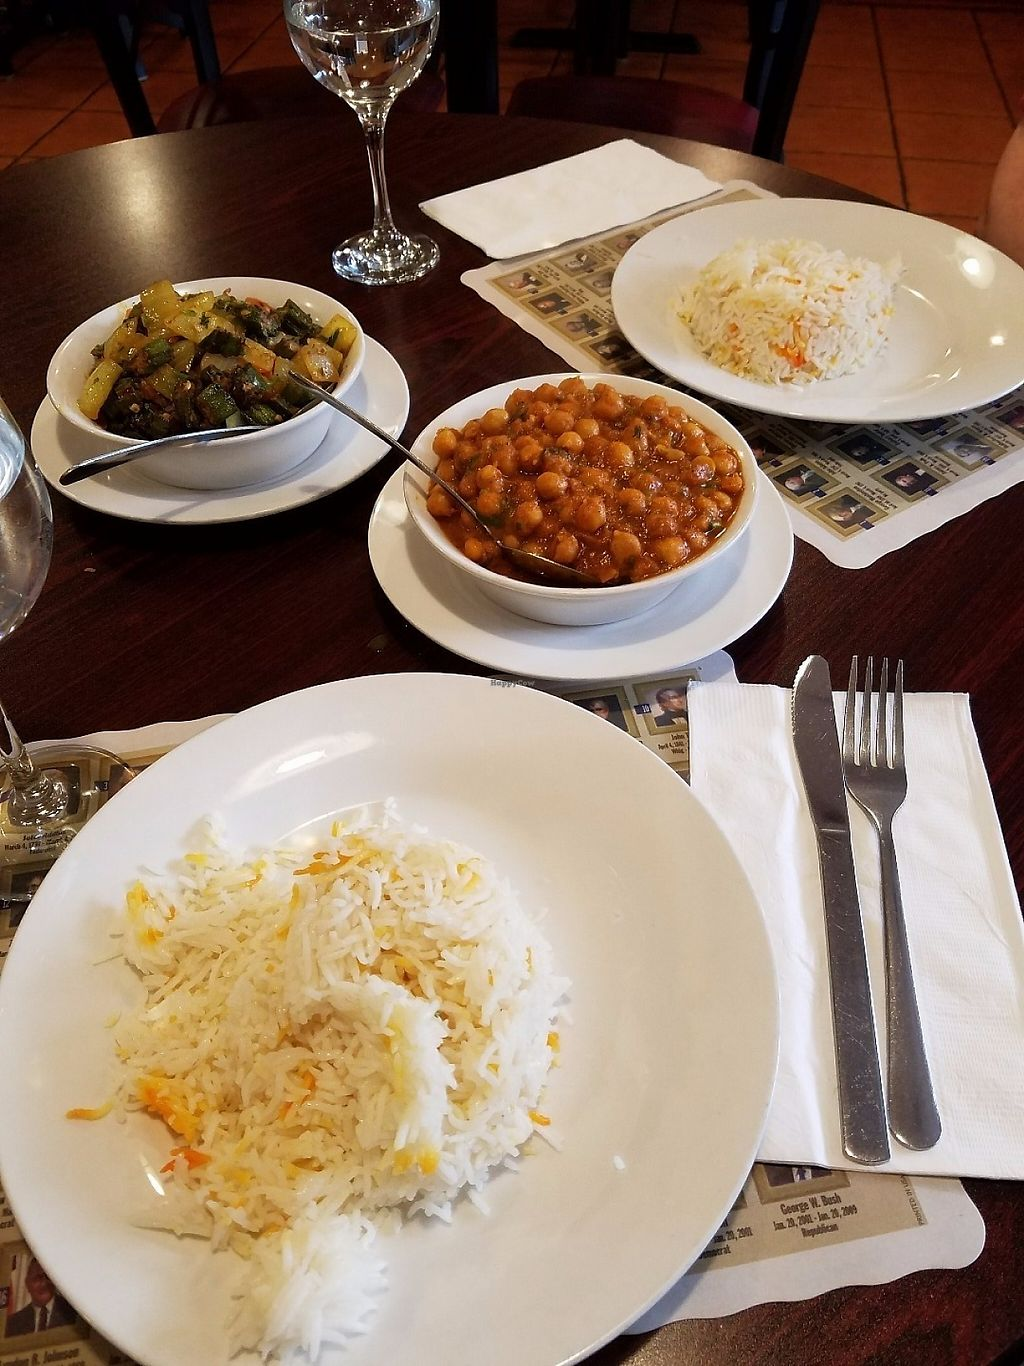 """Photo of Maurya Kebabs & Curries  by <a href=""""/members/profile/MerryRose"""">MerryRose</a> <br/>a tomato and okra curry as well as channa masala with 2 servings of seasoned basmati rice <br/> June 2, 2017  - <a href='/contact/abuse/image/93081/265143'>Report</a>"""